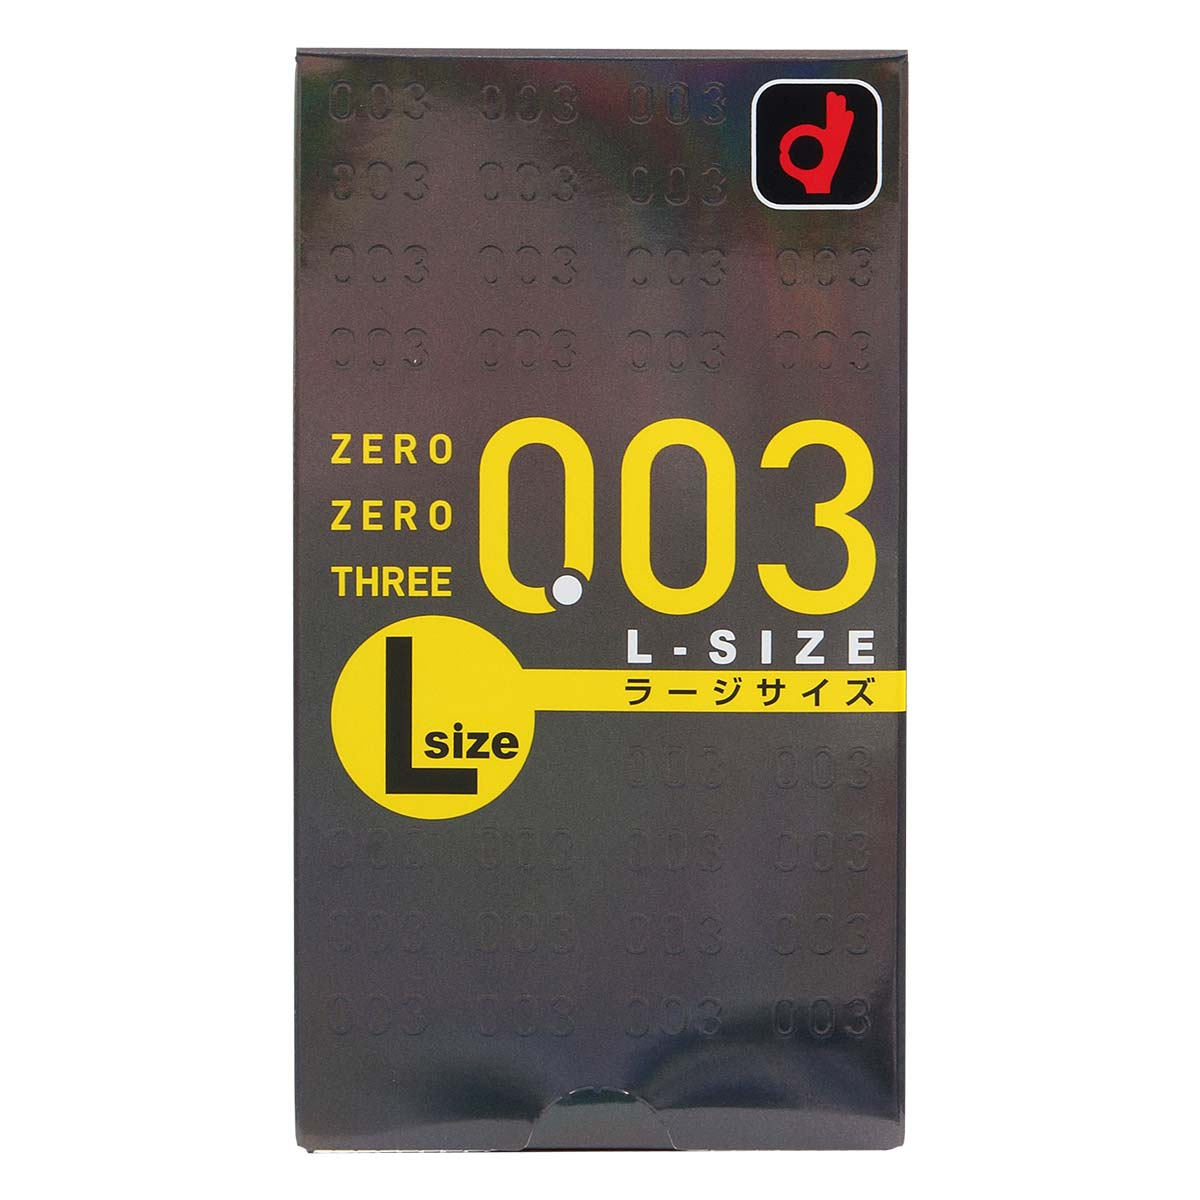 Zero Zero Three 0.03 L-size (Japan Edition) 58mm 10's Pack Latex Condom